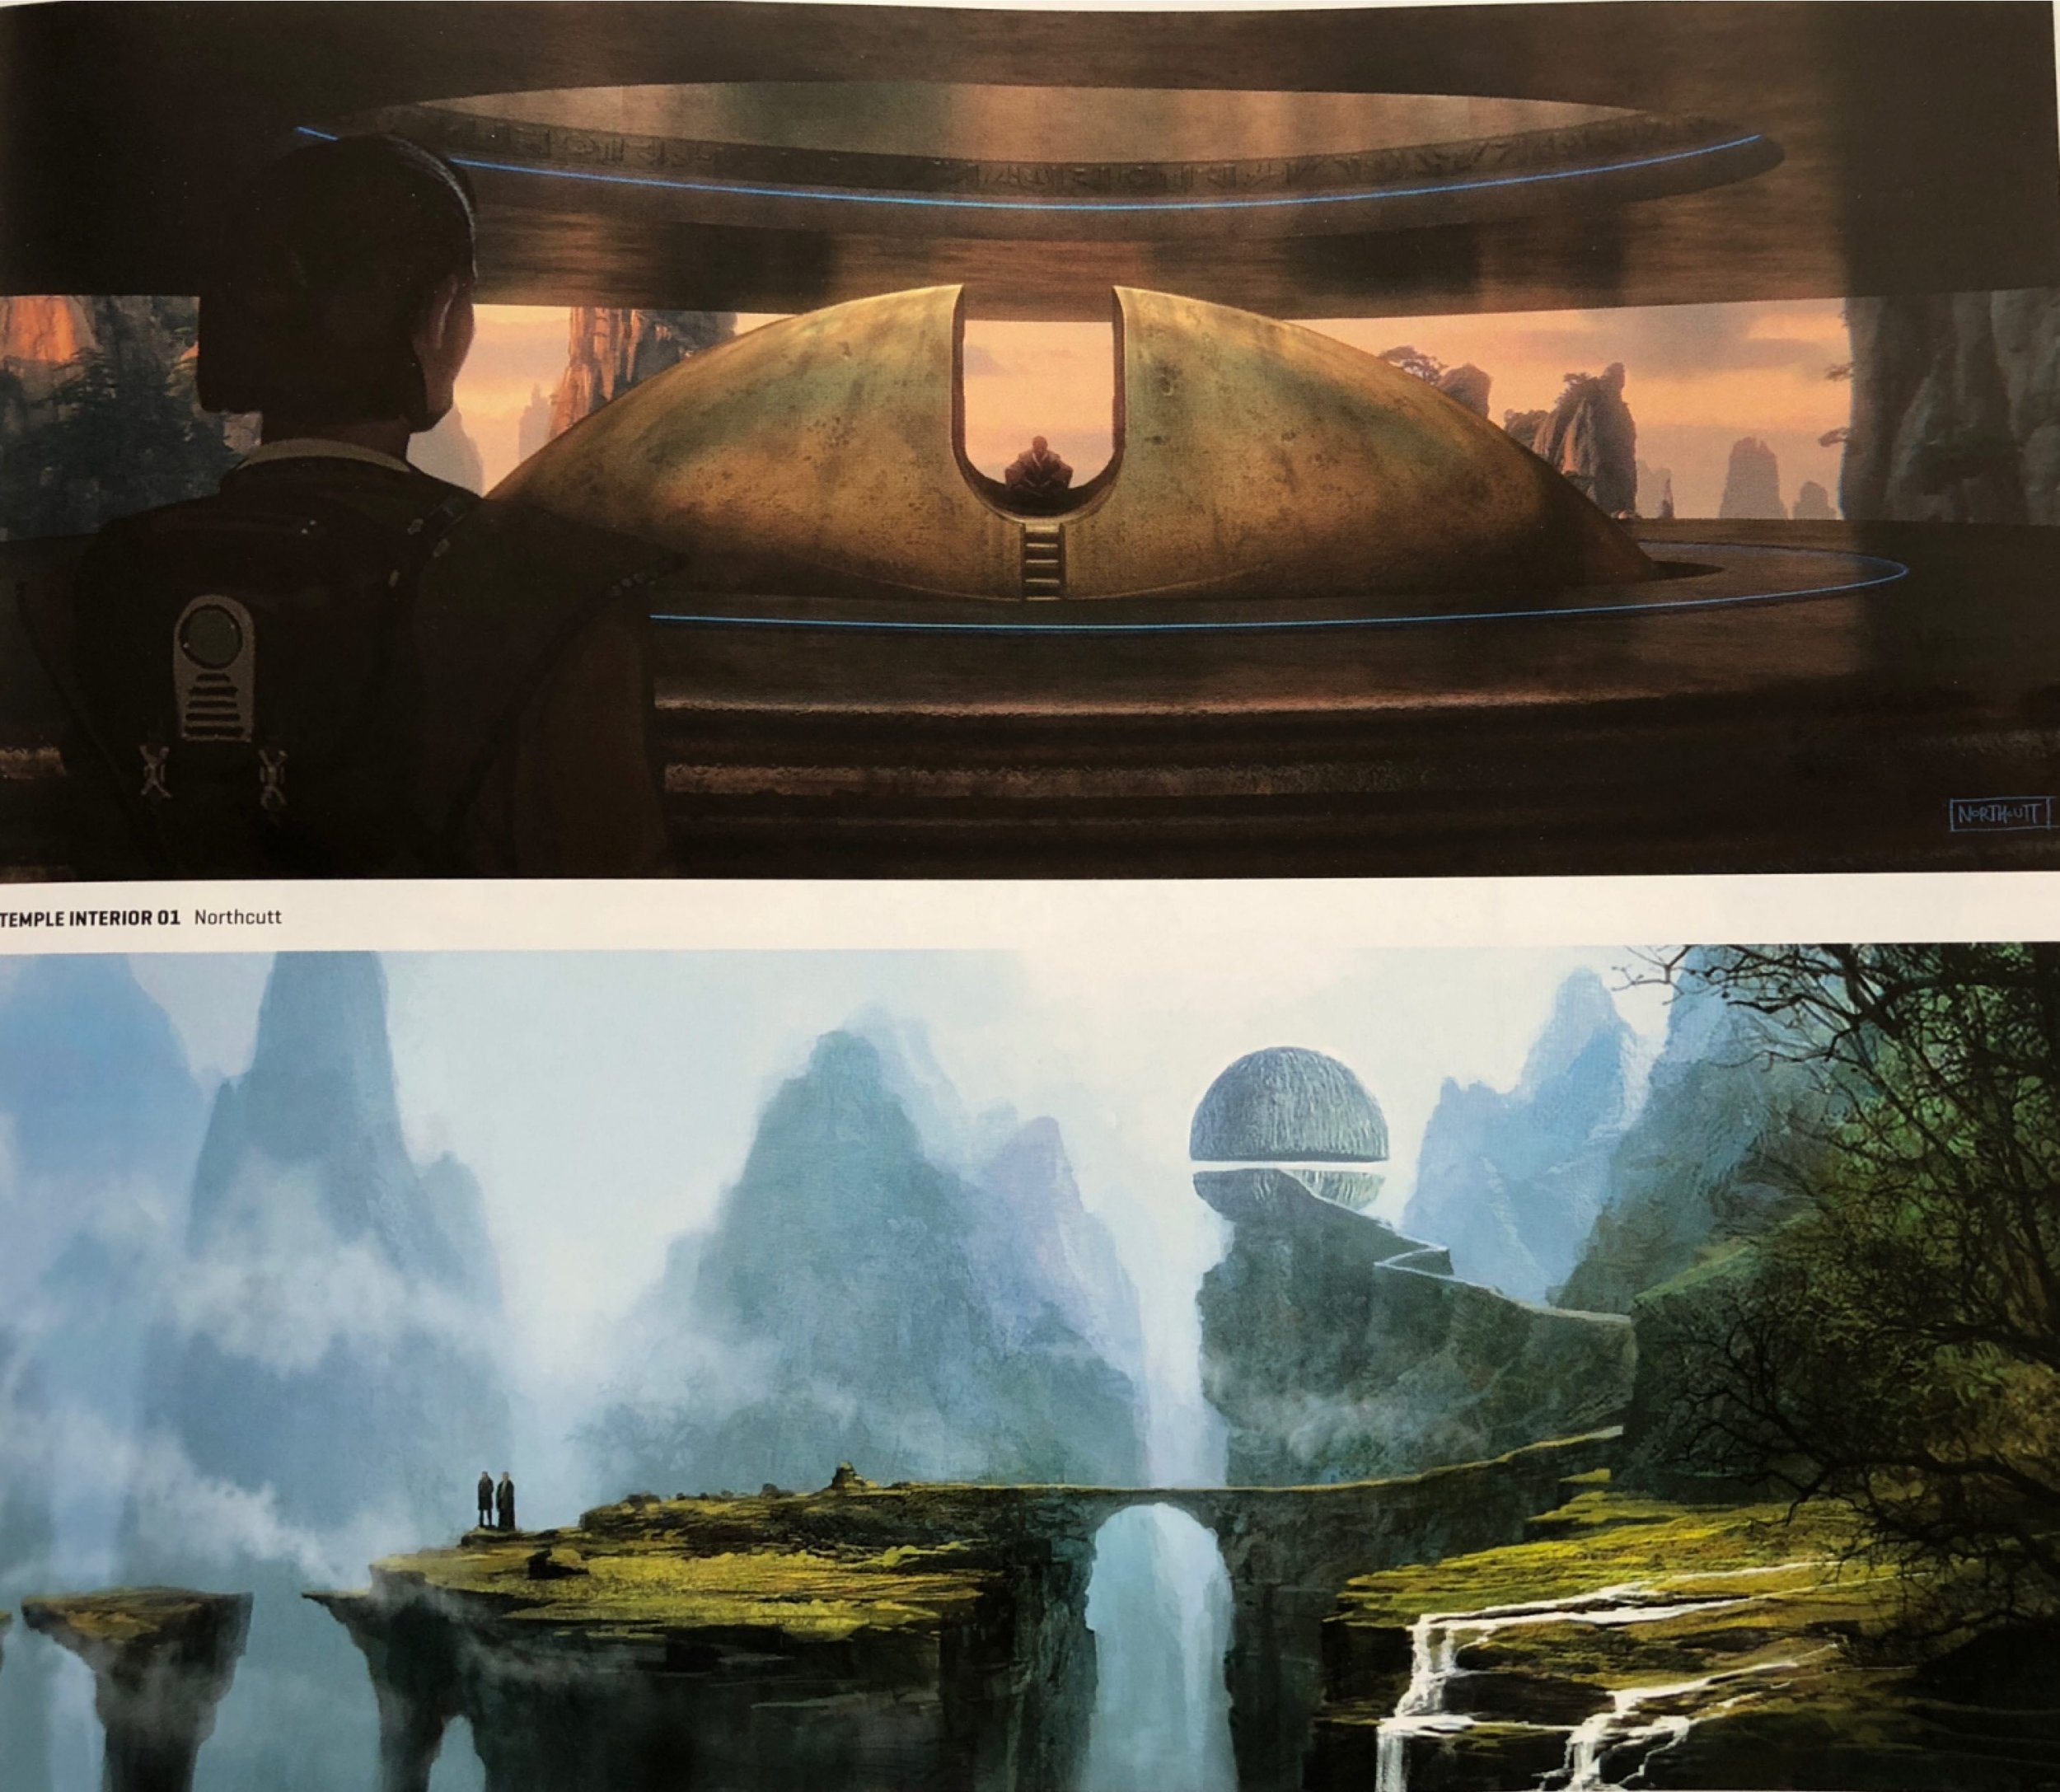 concept-art-revealed-for-george-lucas-vision-of-the-jedi-temple-for-star-wars-episode-vii6